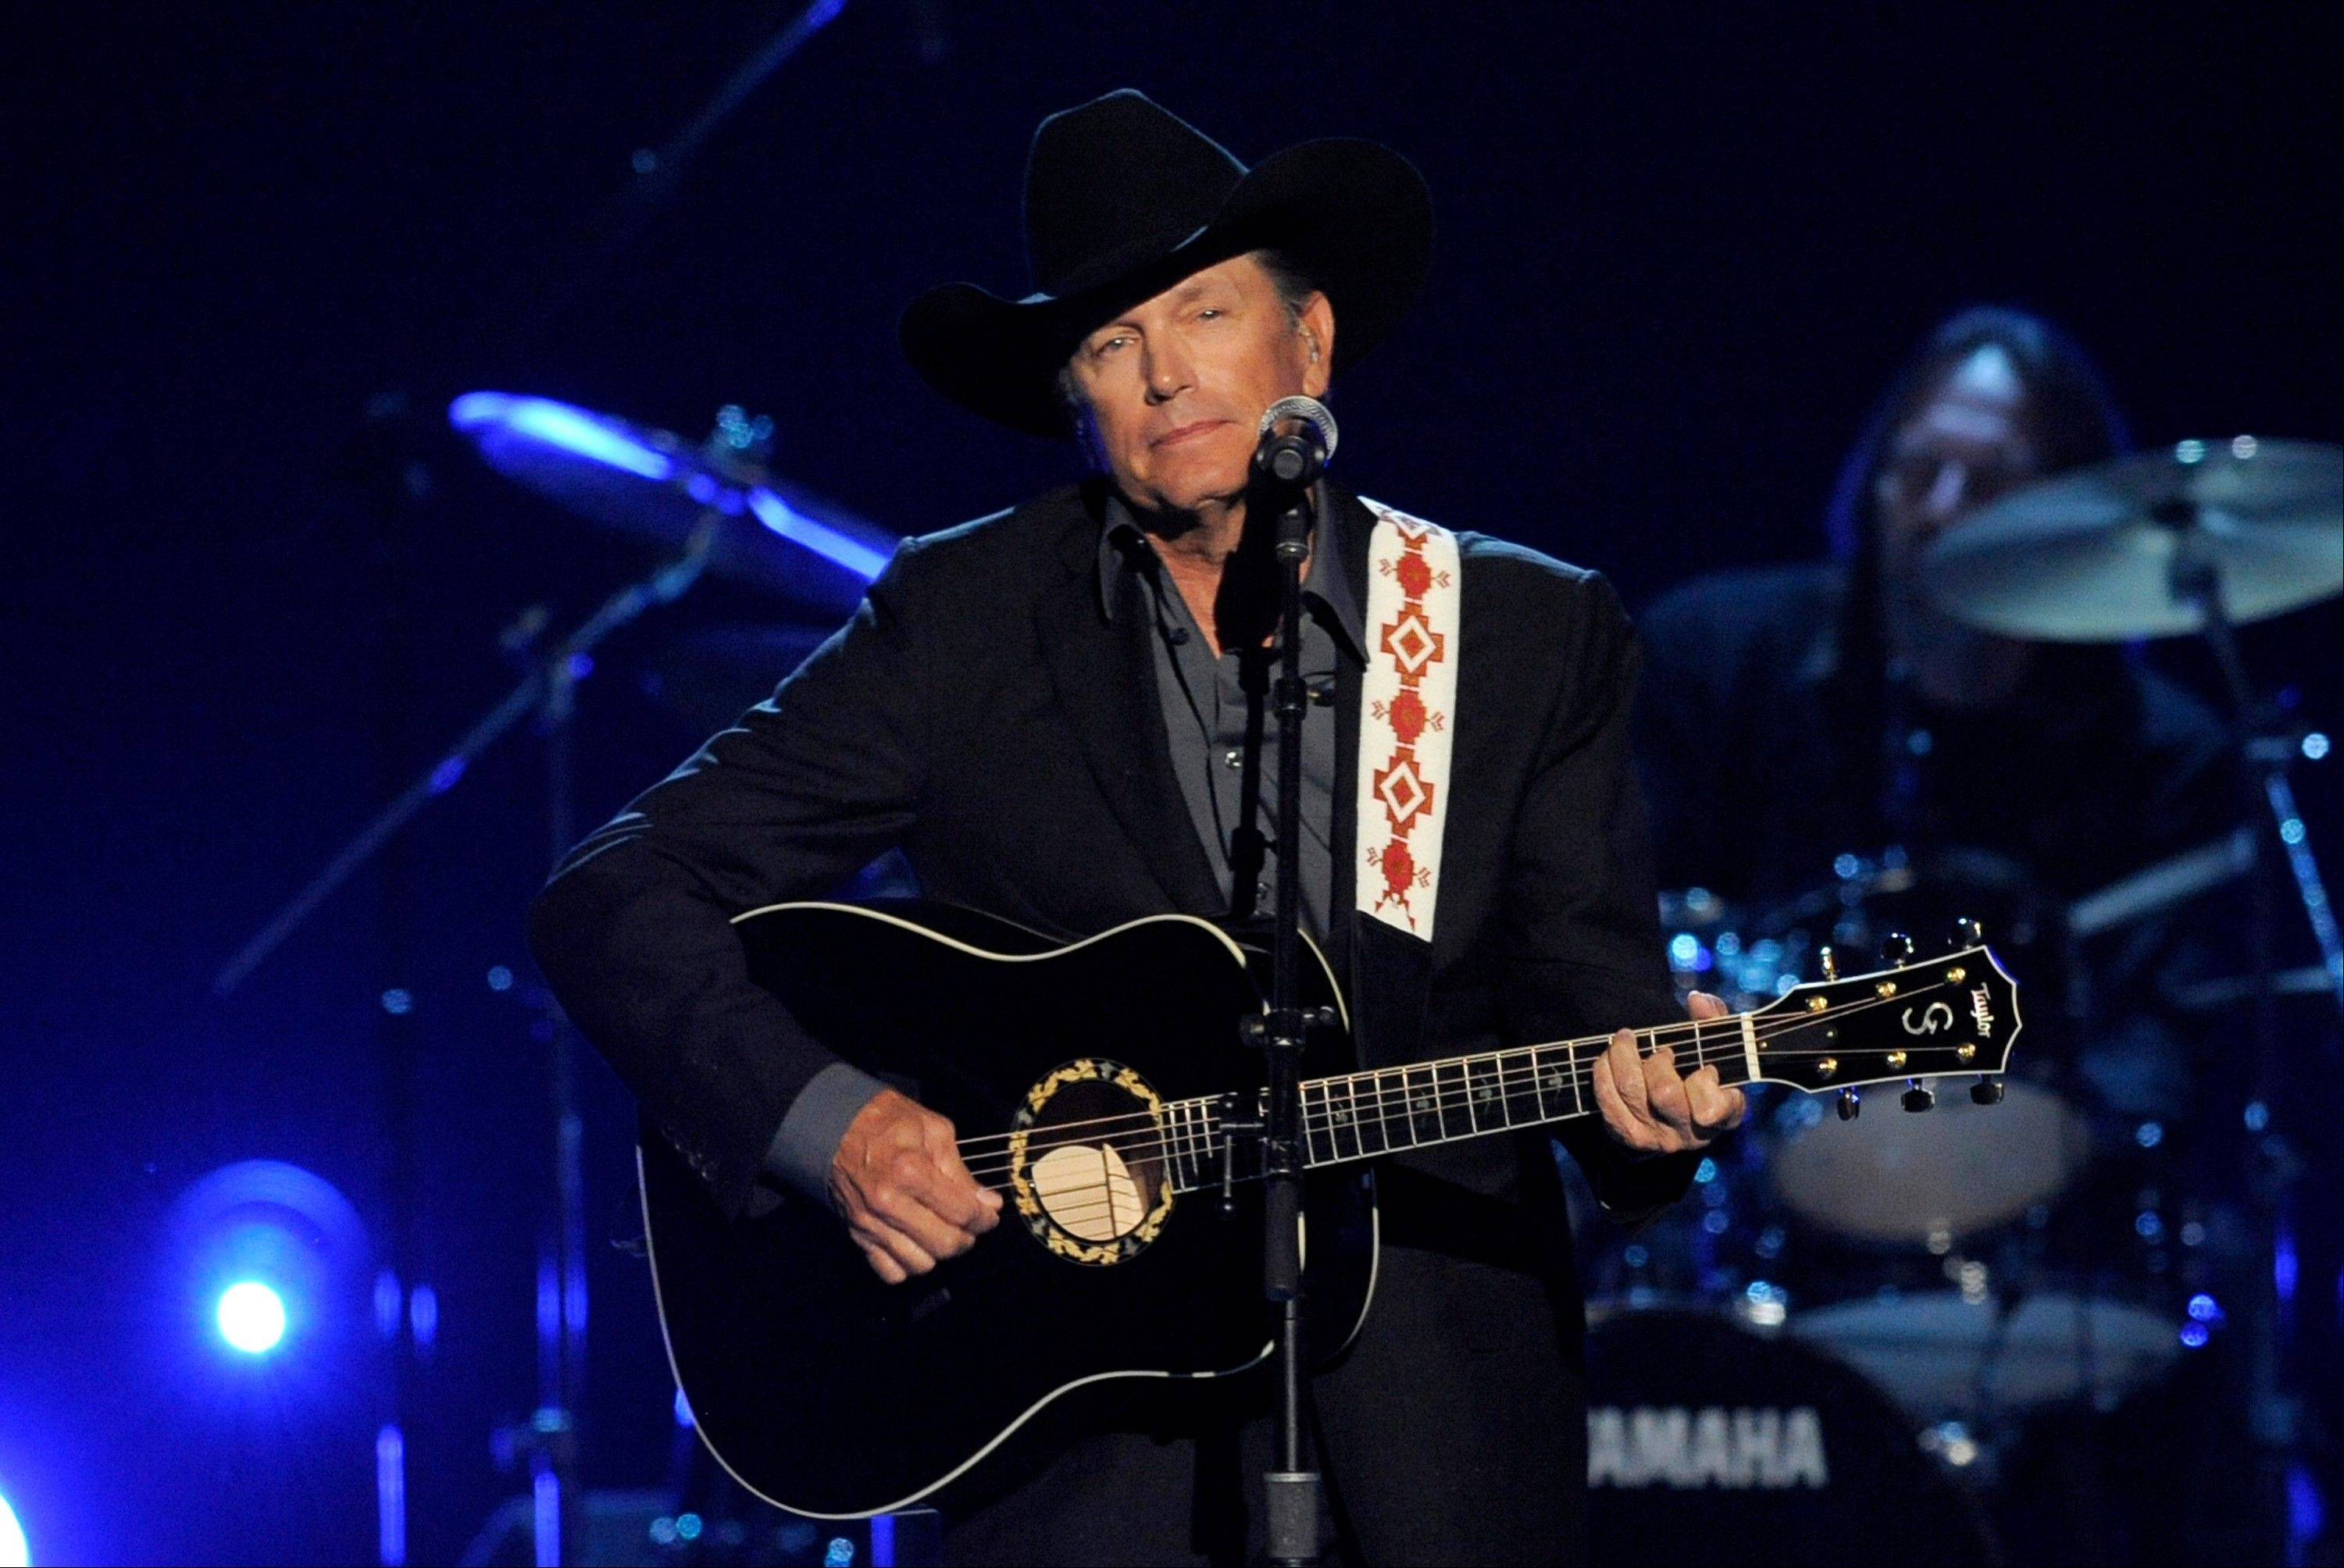 Country star George Strait will perform at the Allstate Arena in Rosemont at 7 p.m. Saturday, March 8.